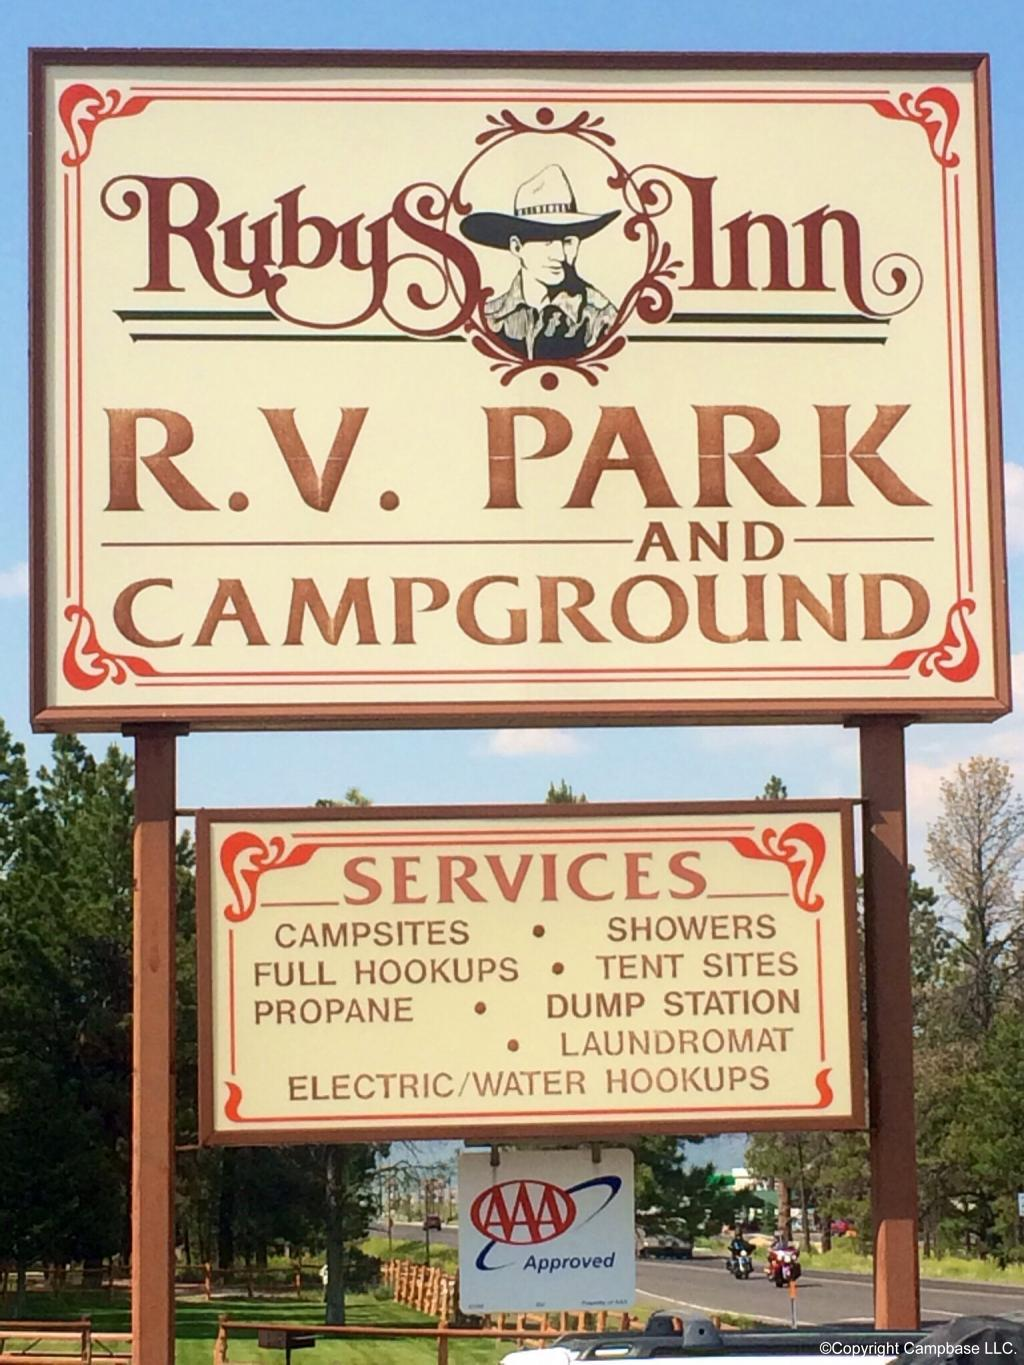 Rubys Inn Rv Park And Campground Bryce Canyon Utah